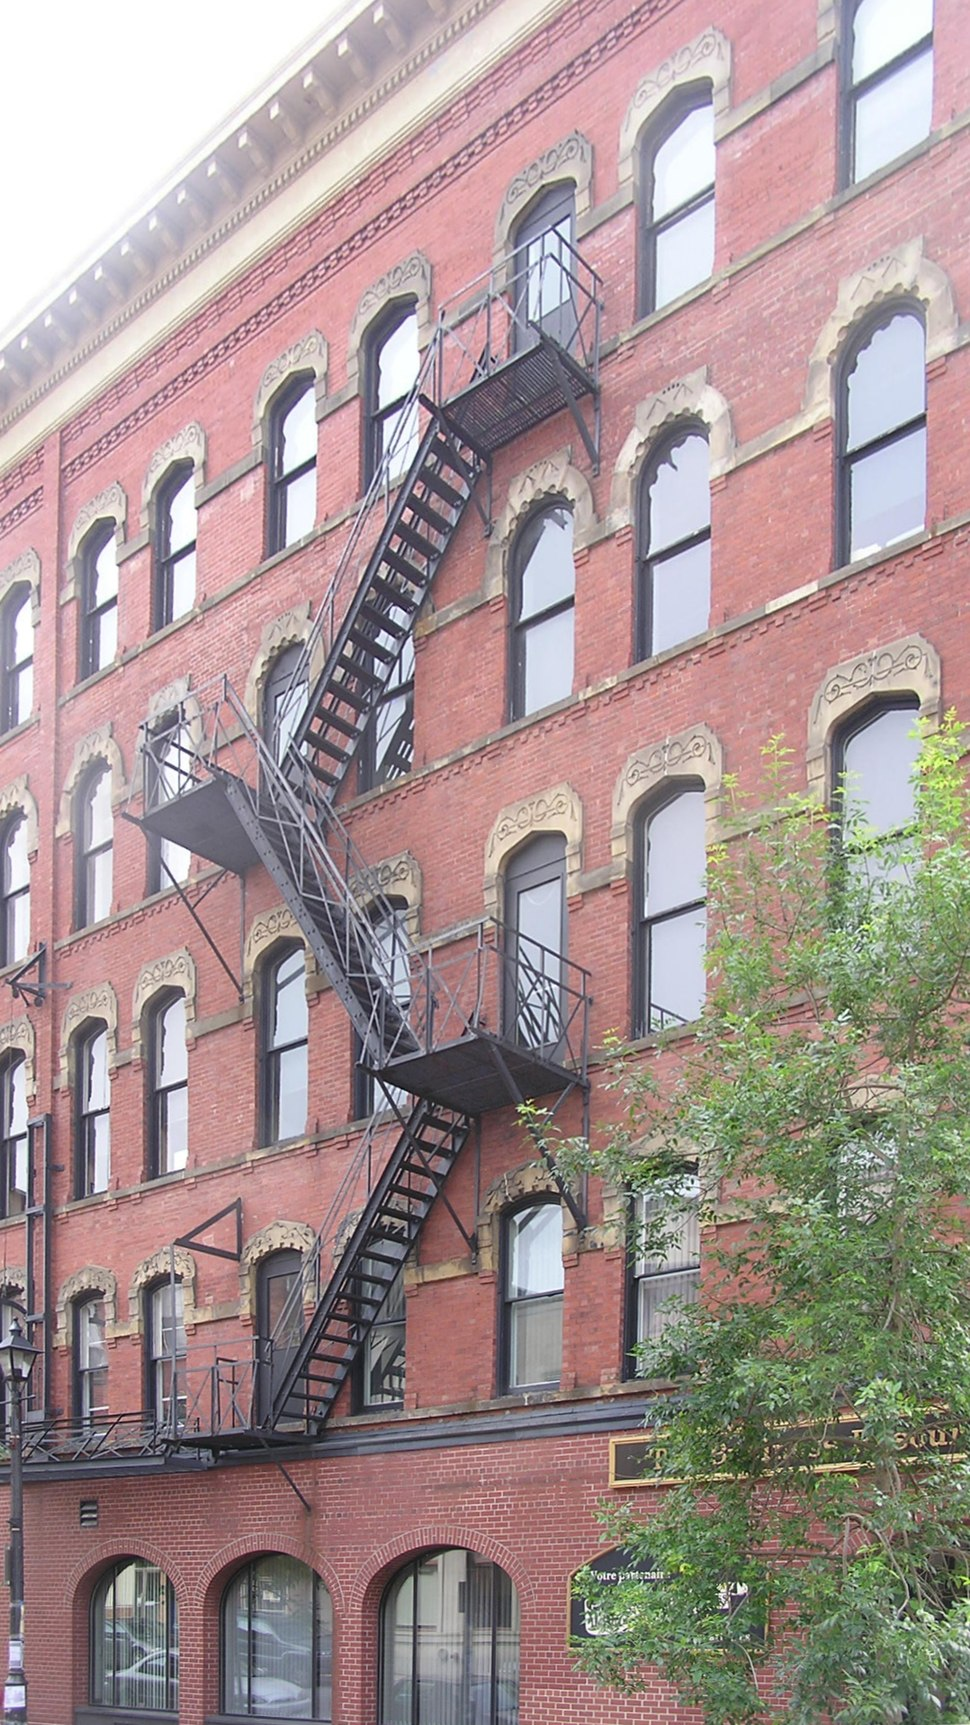 Saint John, NB, historical building with iron staircase, Germain and King Sts.